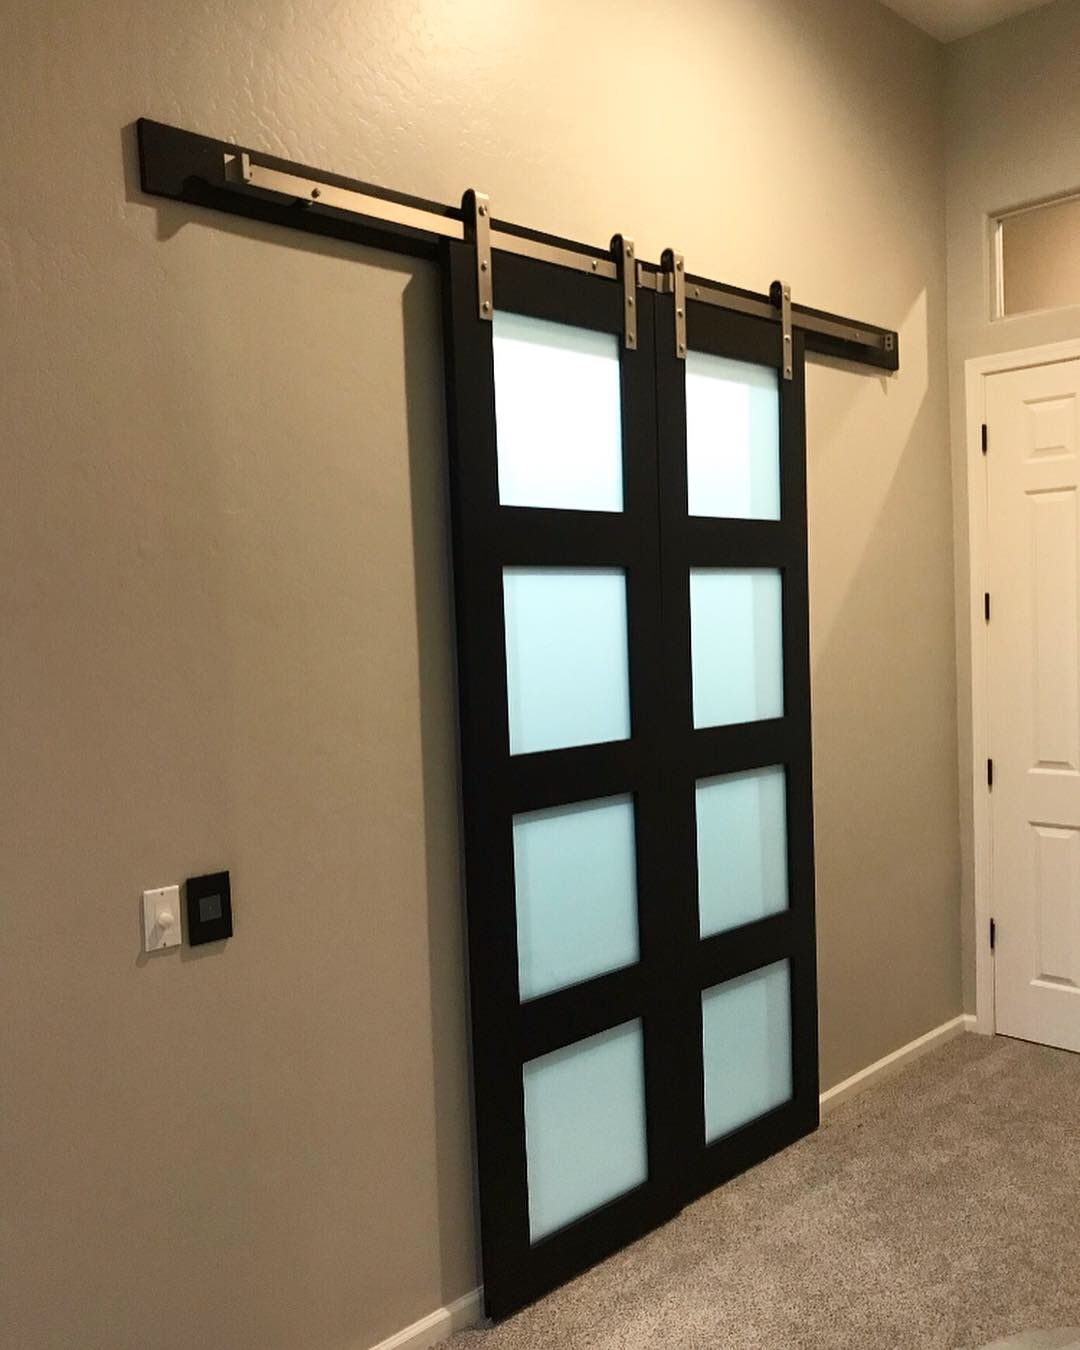 Closet Barn Doors With Privacy Glass By The Barn Door Store In Az Glass Barn Doors Barn Doors Sliding Store Door